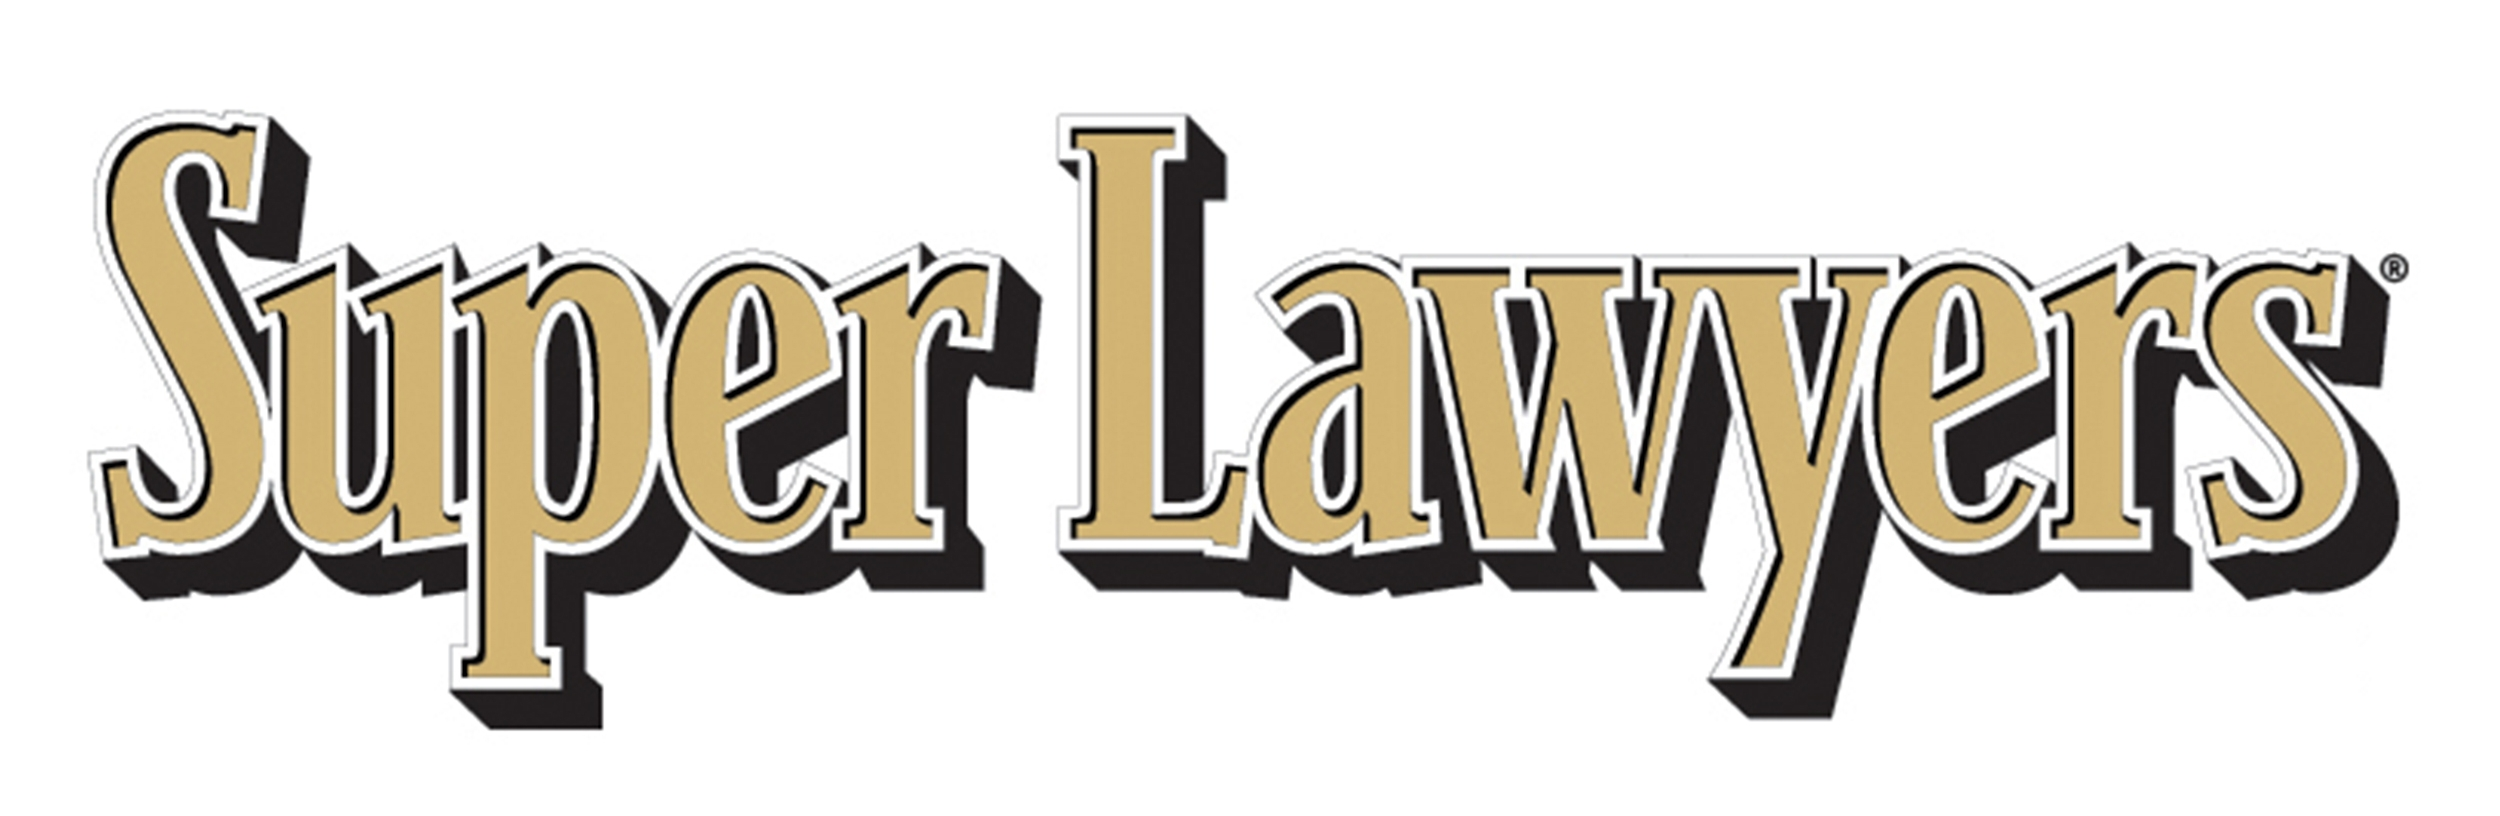 Selected to Super Lawyers  2005 - 2016   Criminal Defense,Criminal Defense: DUI/DWI, Criminal Defense: White Collar